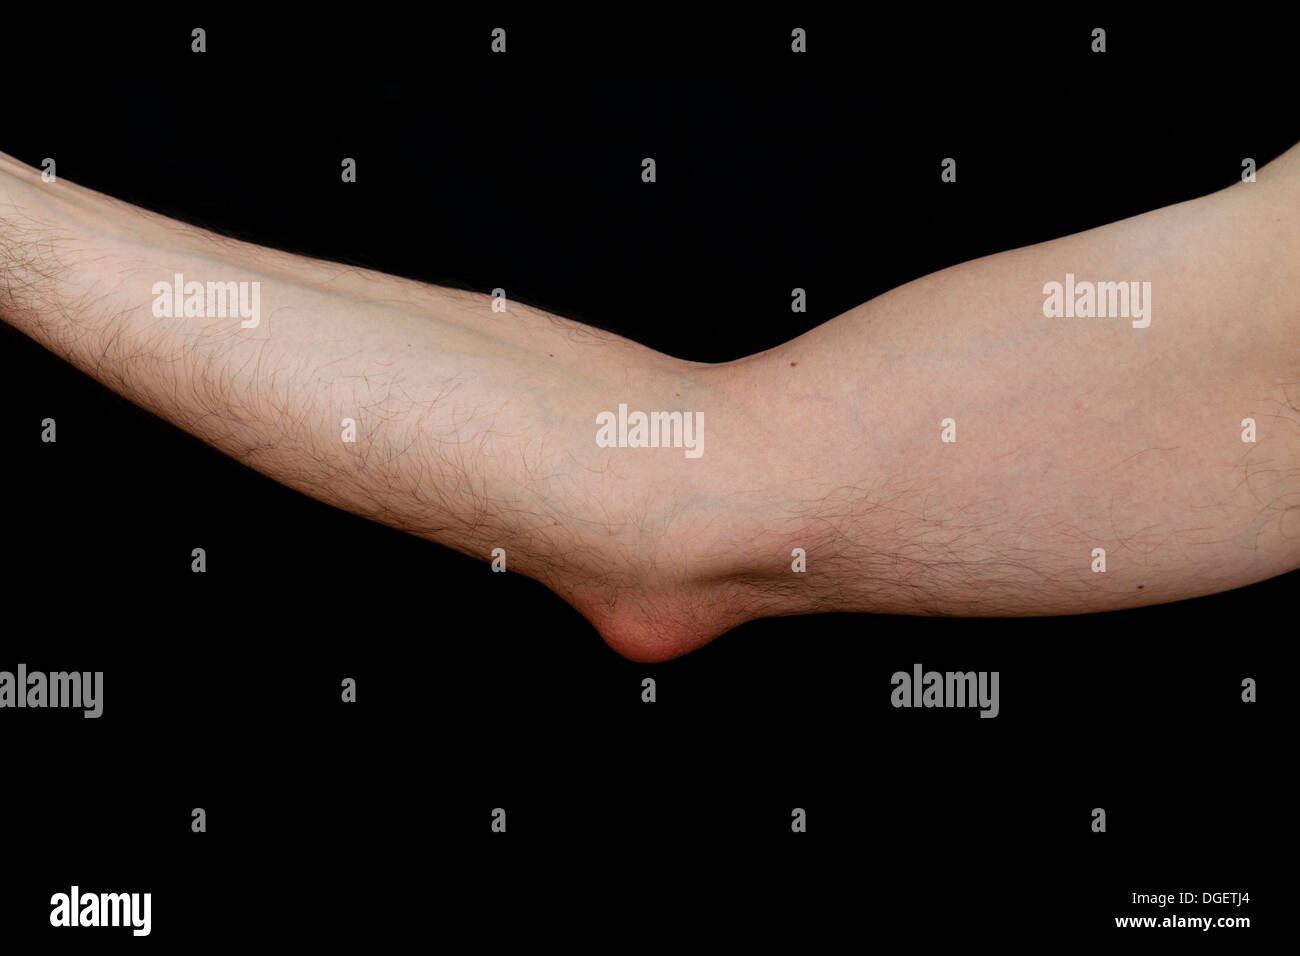 Olecranon bursitis, is a medical condition caused by the ...